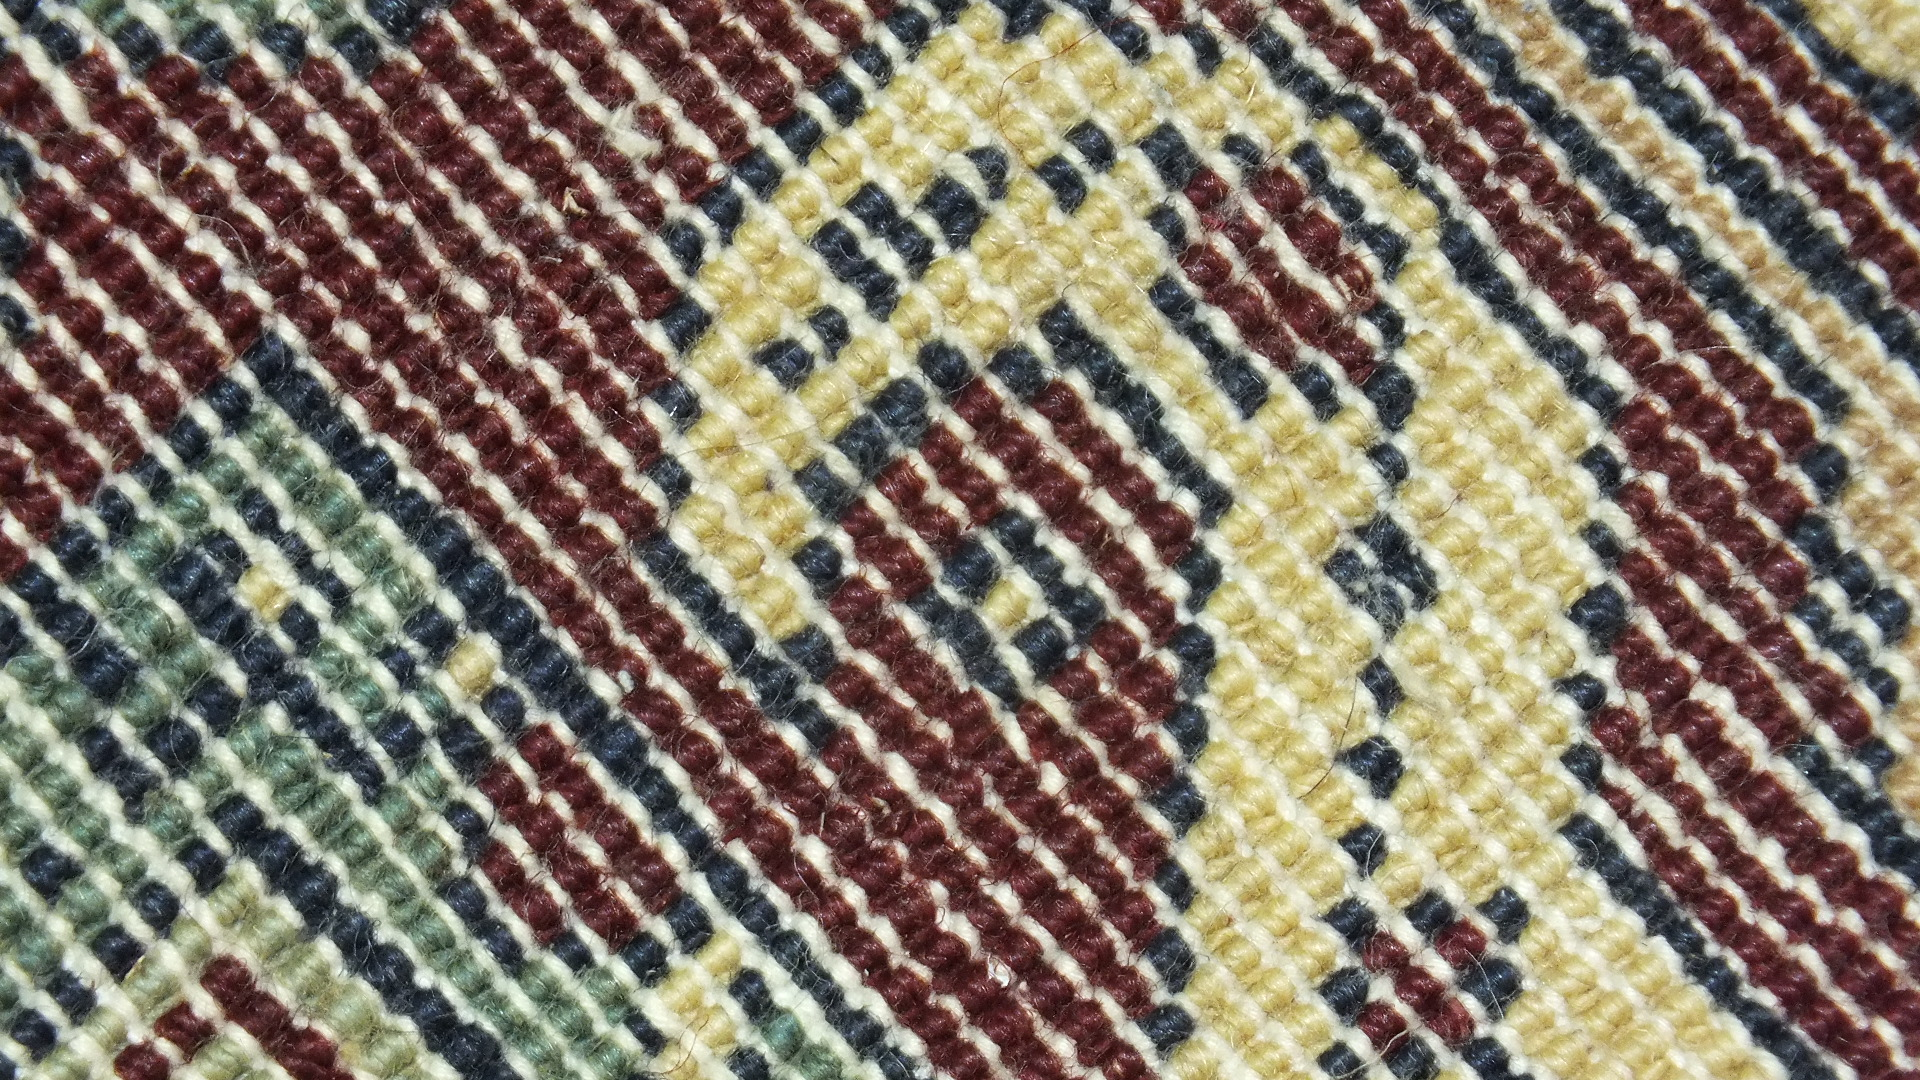 Lot 43 - A modern Oriental rug with geometric design on ivory and burgundy field, 220 x 140cm.